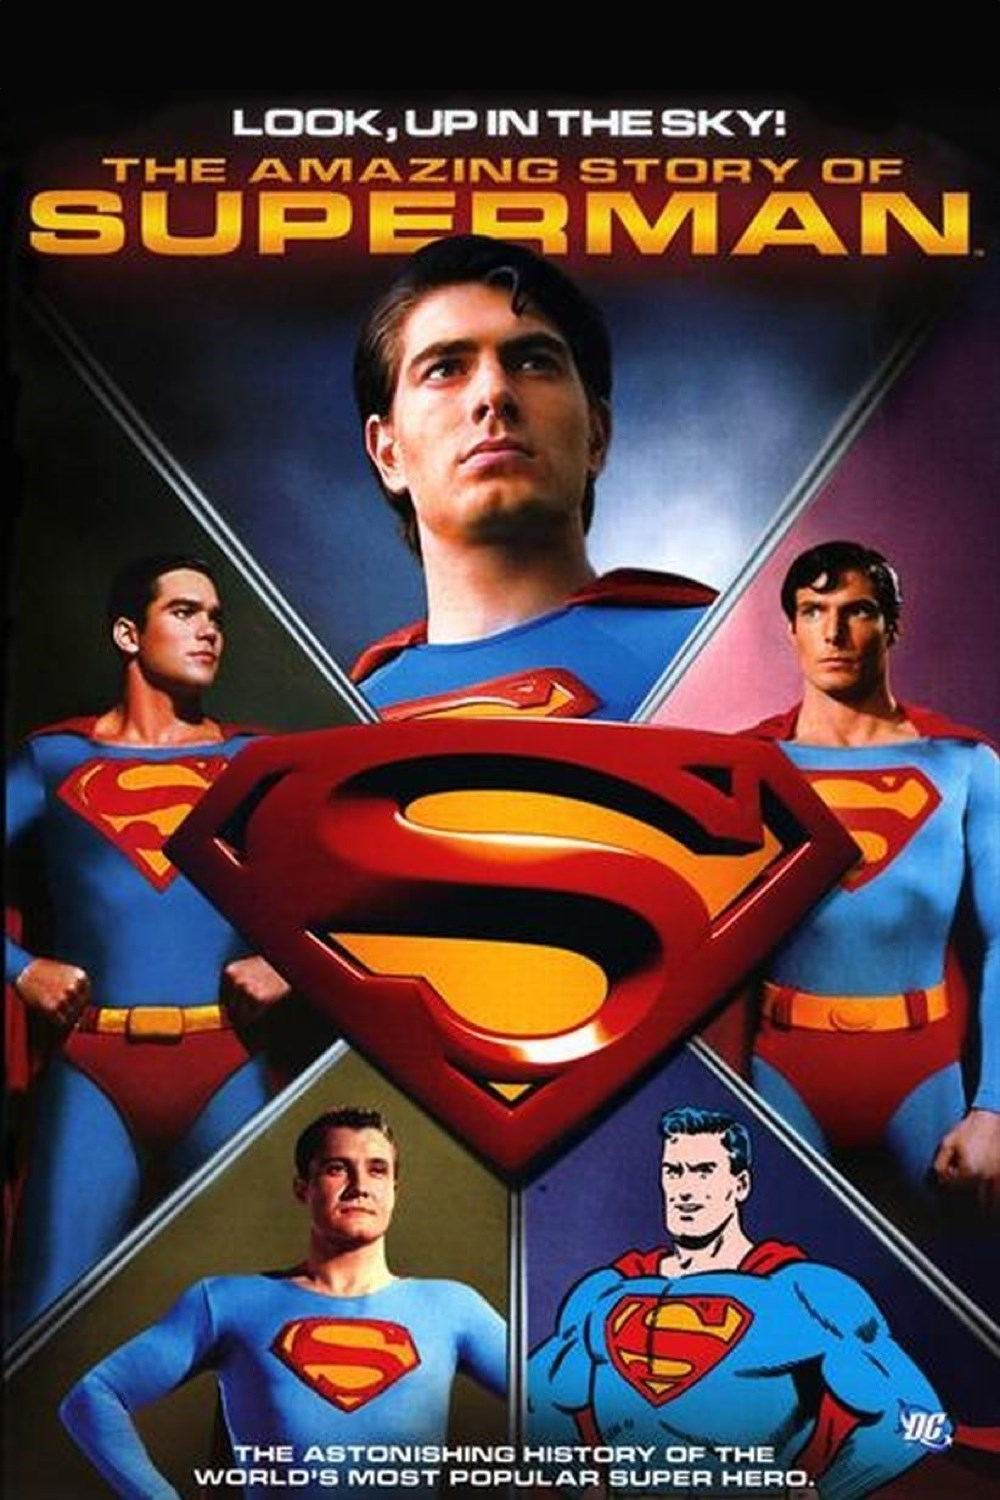 look-up-in-the-sky-the-amazing-story-of-superman.17347